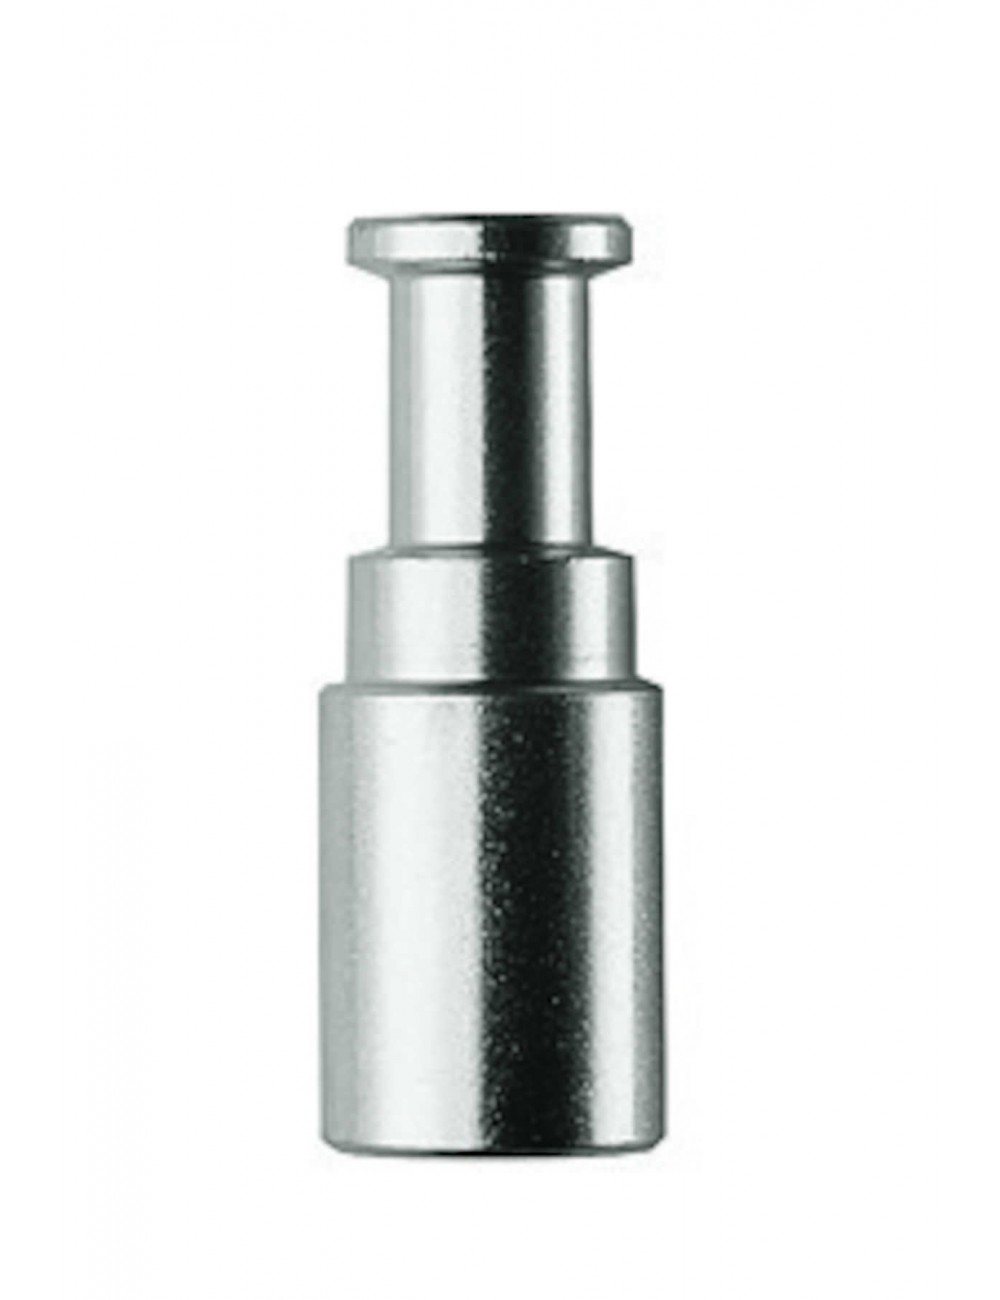 "Female Threaded 3/8"" to Male 5/8"" Stud Adapter"